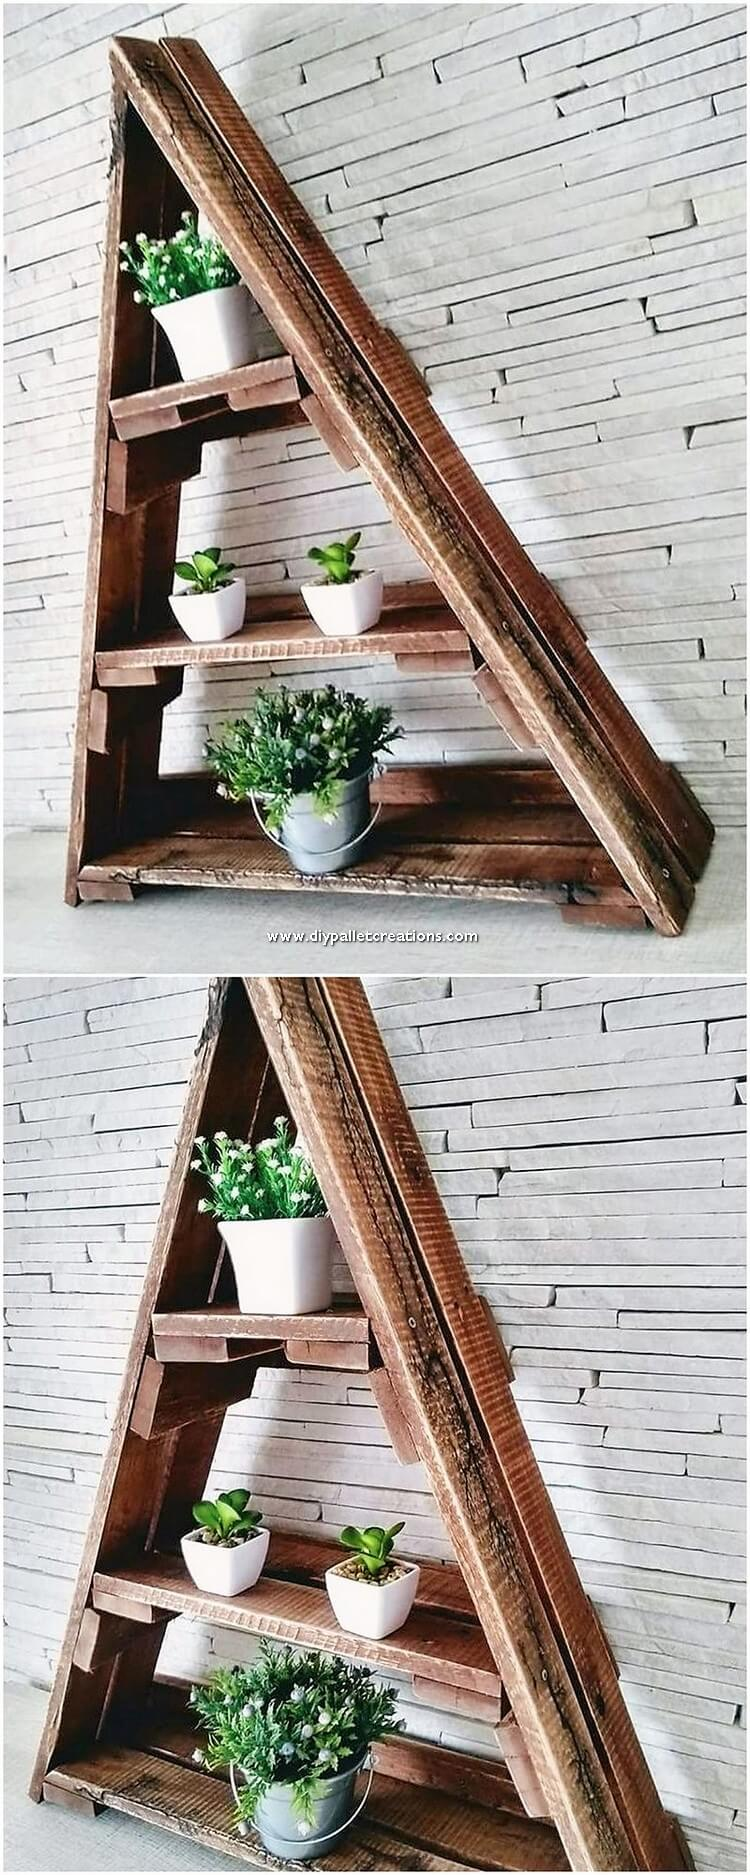 Pallet Planter Pots Shelf